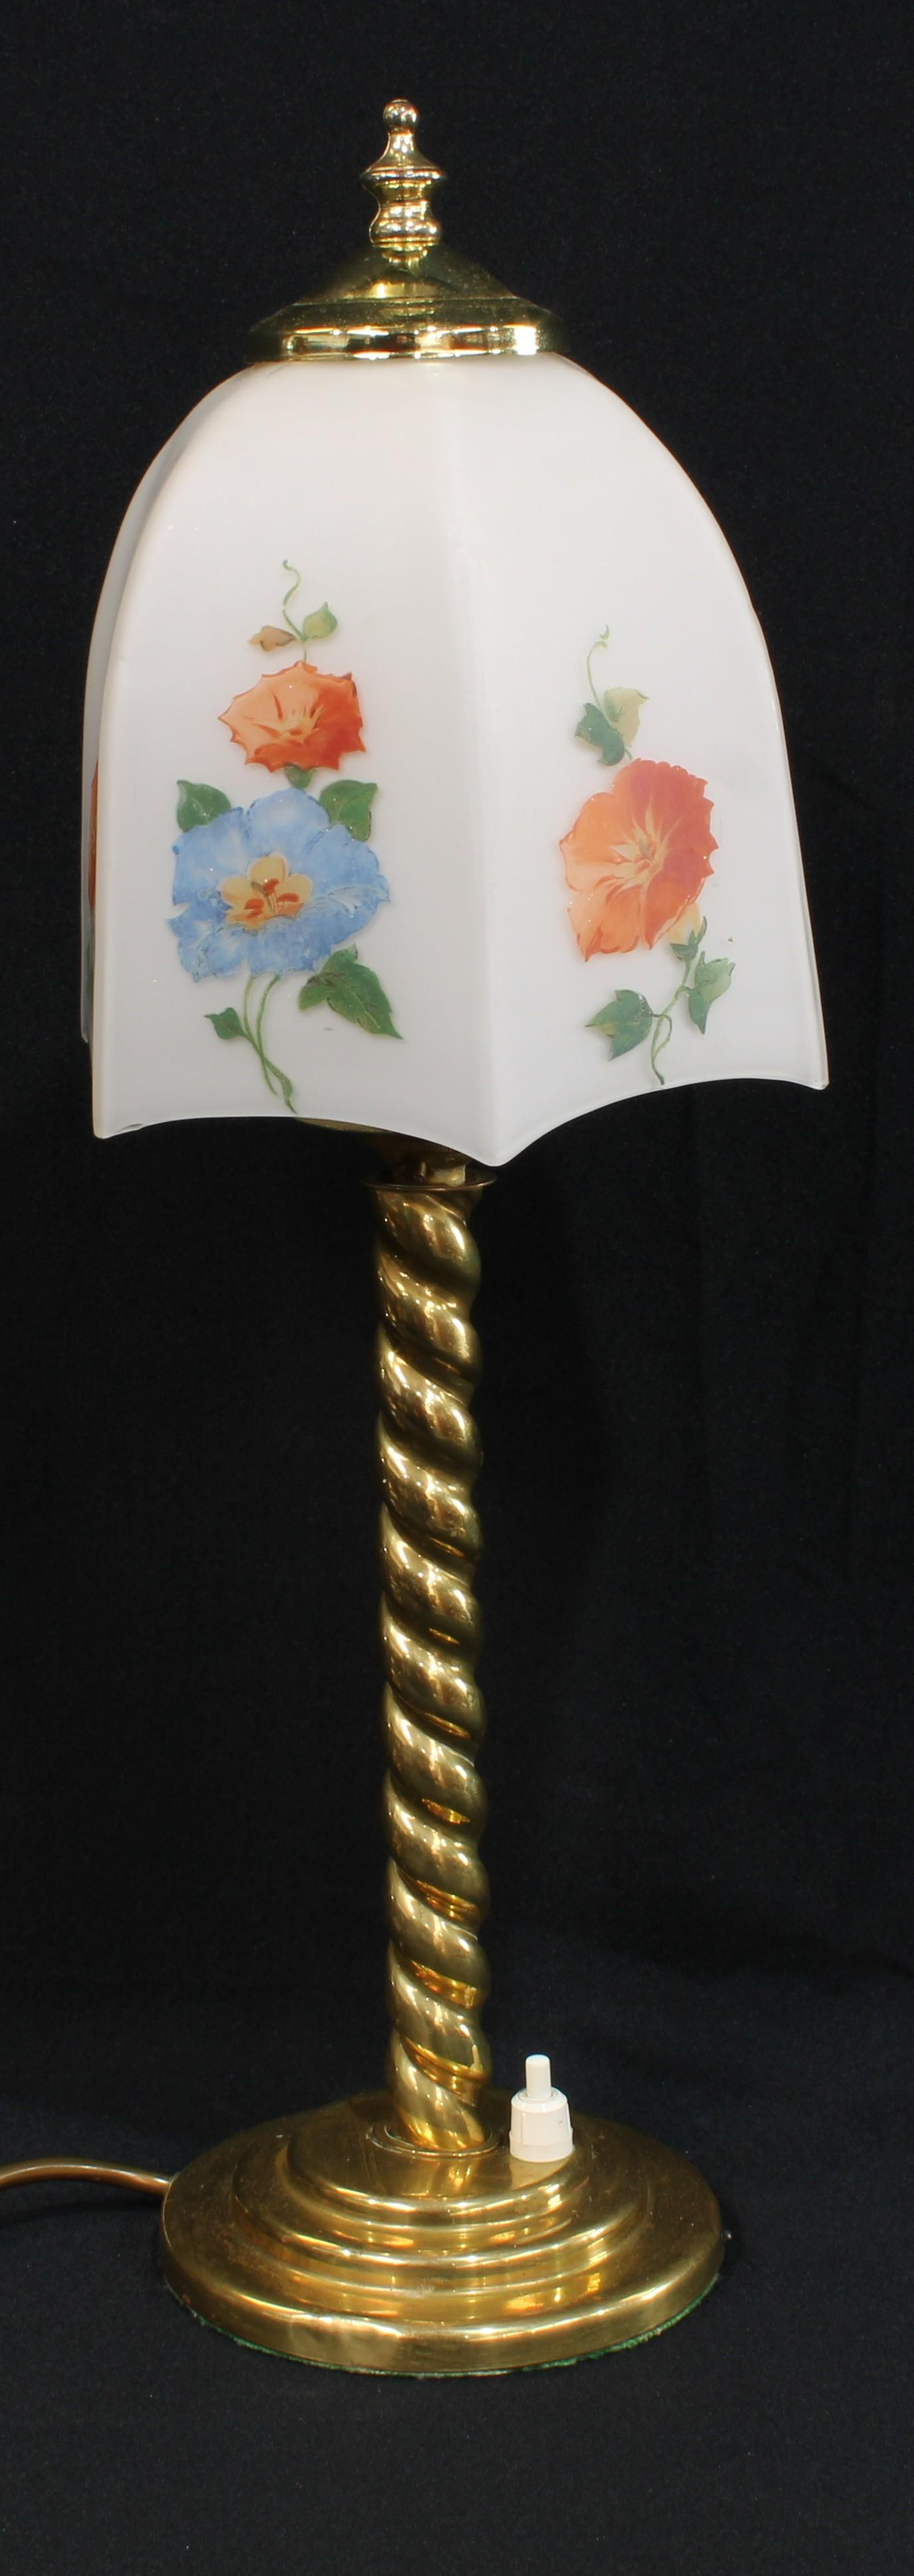 A brass barley twist table lamp, opaque glass shade decorated with flowers, 46.5cm high